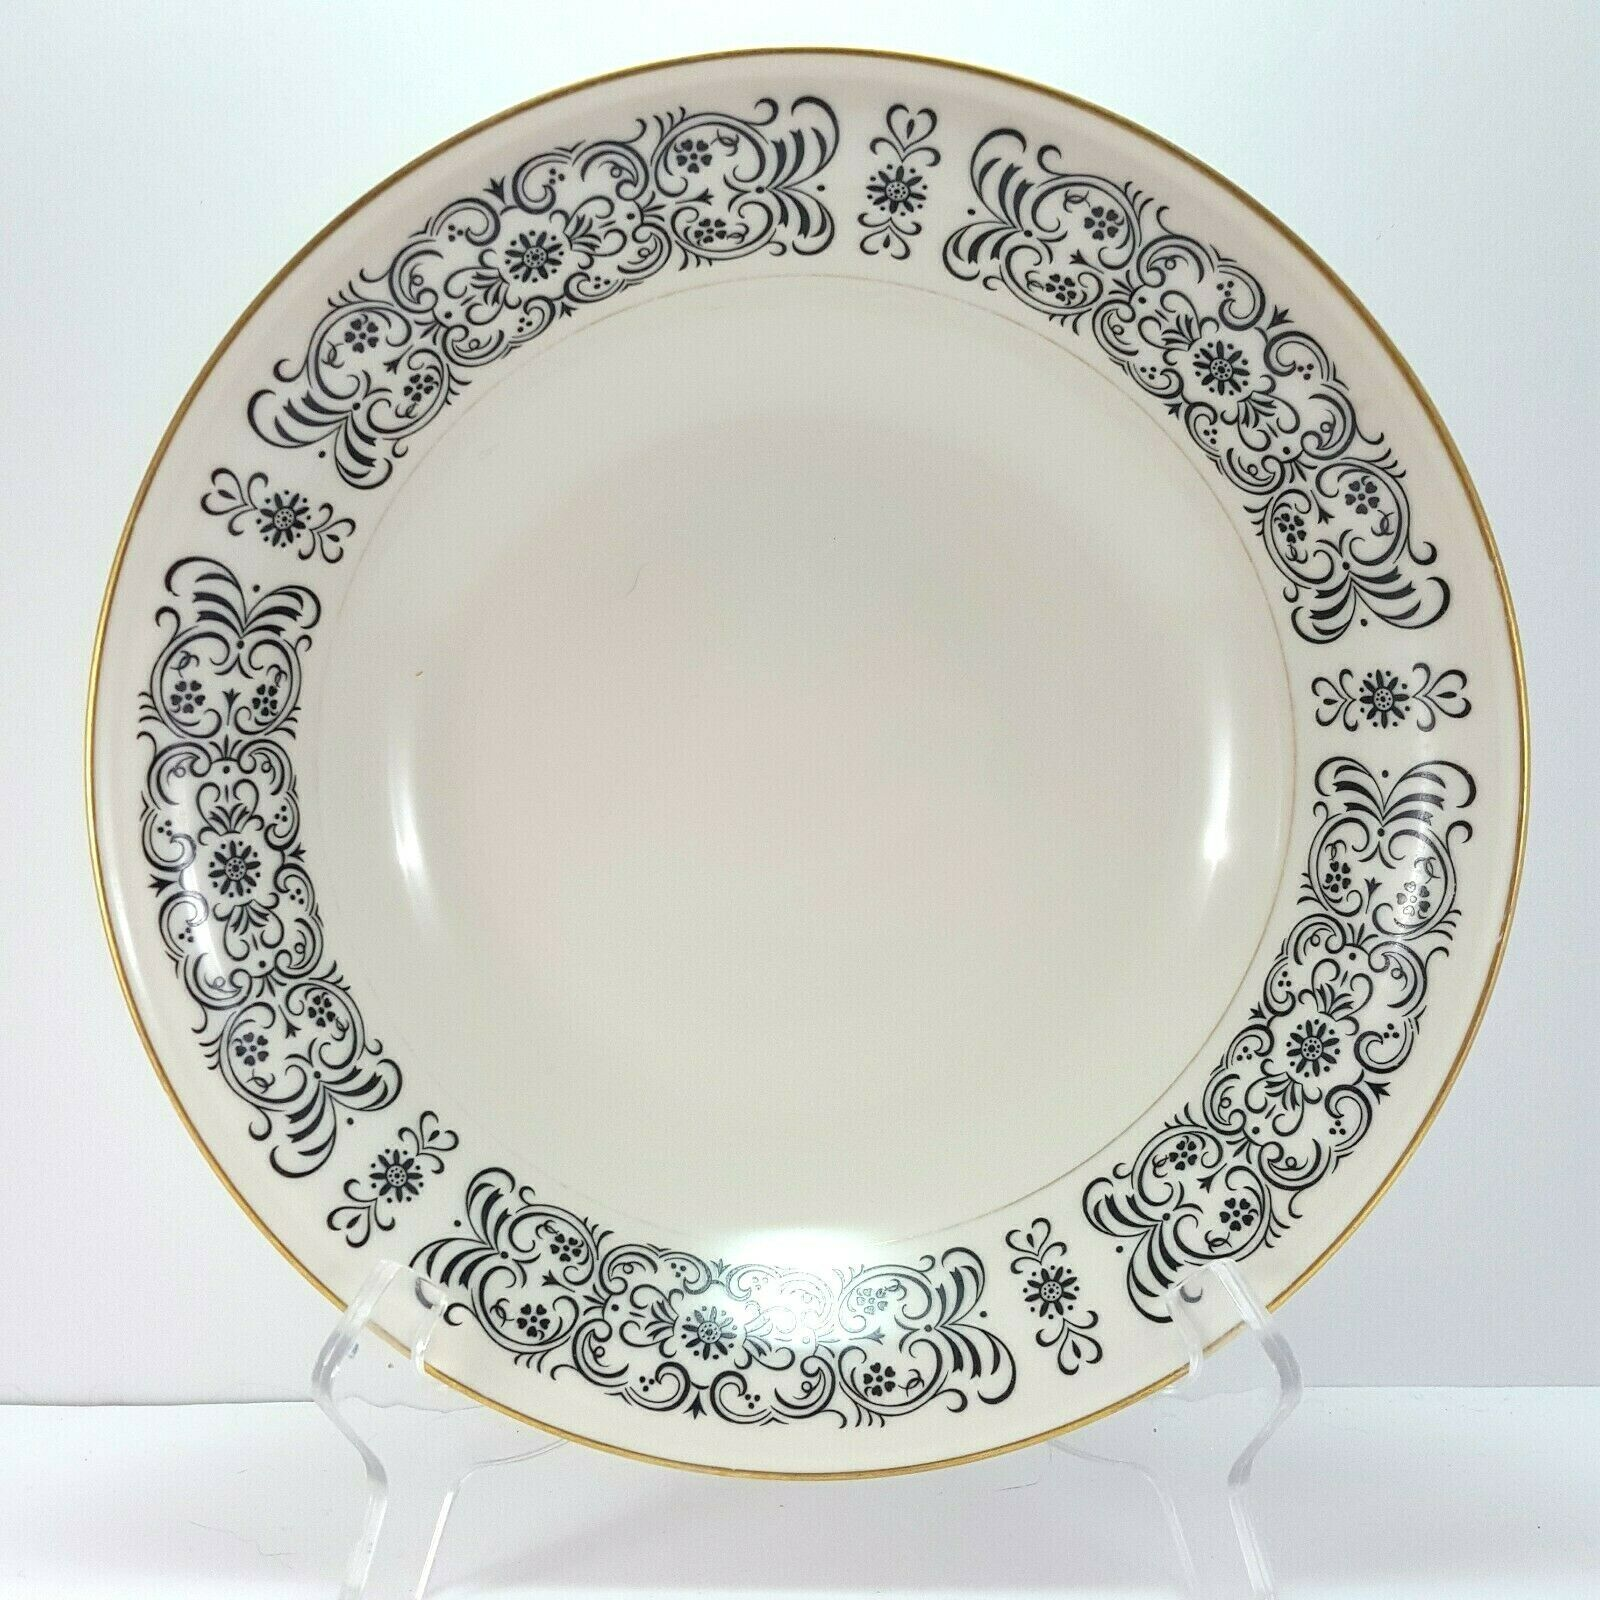 Primary image for Mikasa Riviera 205 Round Vegetable Serving Bowl Ivory Black Scrolls 9-5/8""